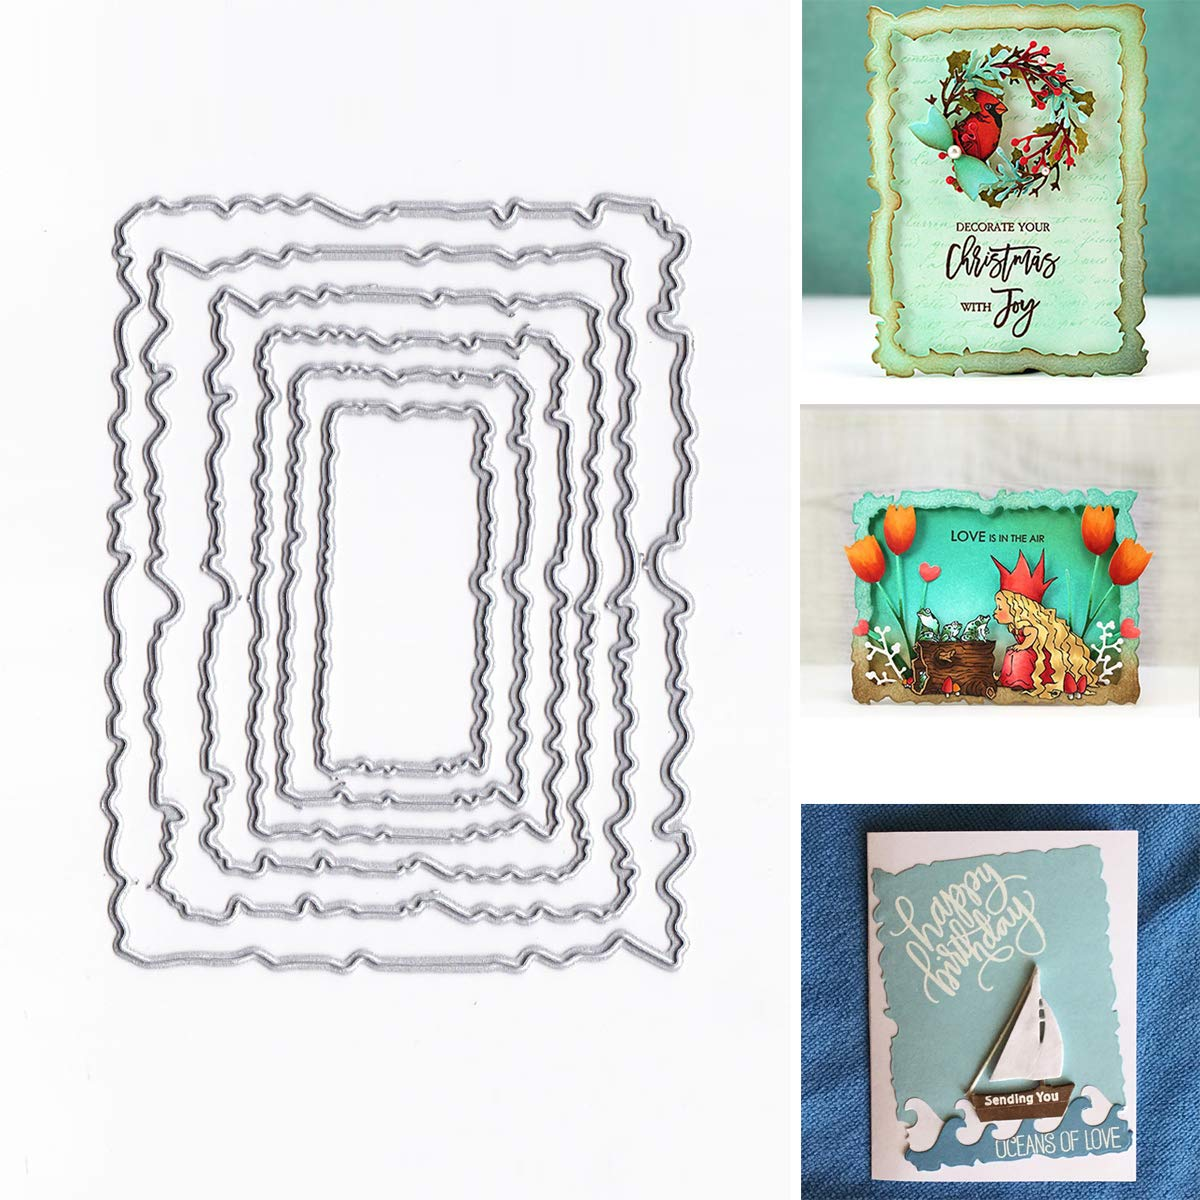 SODIAL 6pcs//t Vintage Torn Rectangle Frame Metal Cutting Dies DIY Scrapbooking Photo Album Embossing Paper Cards Decorative Craft